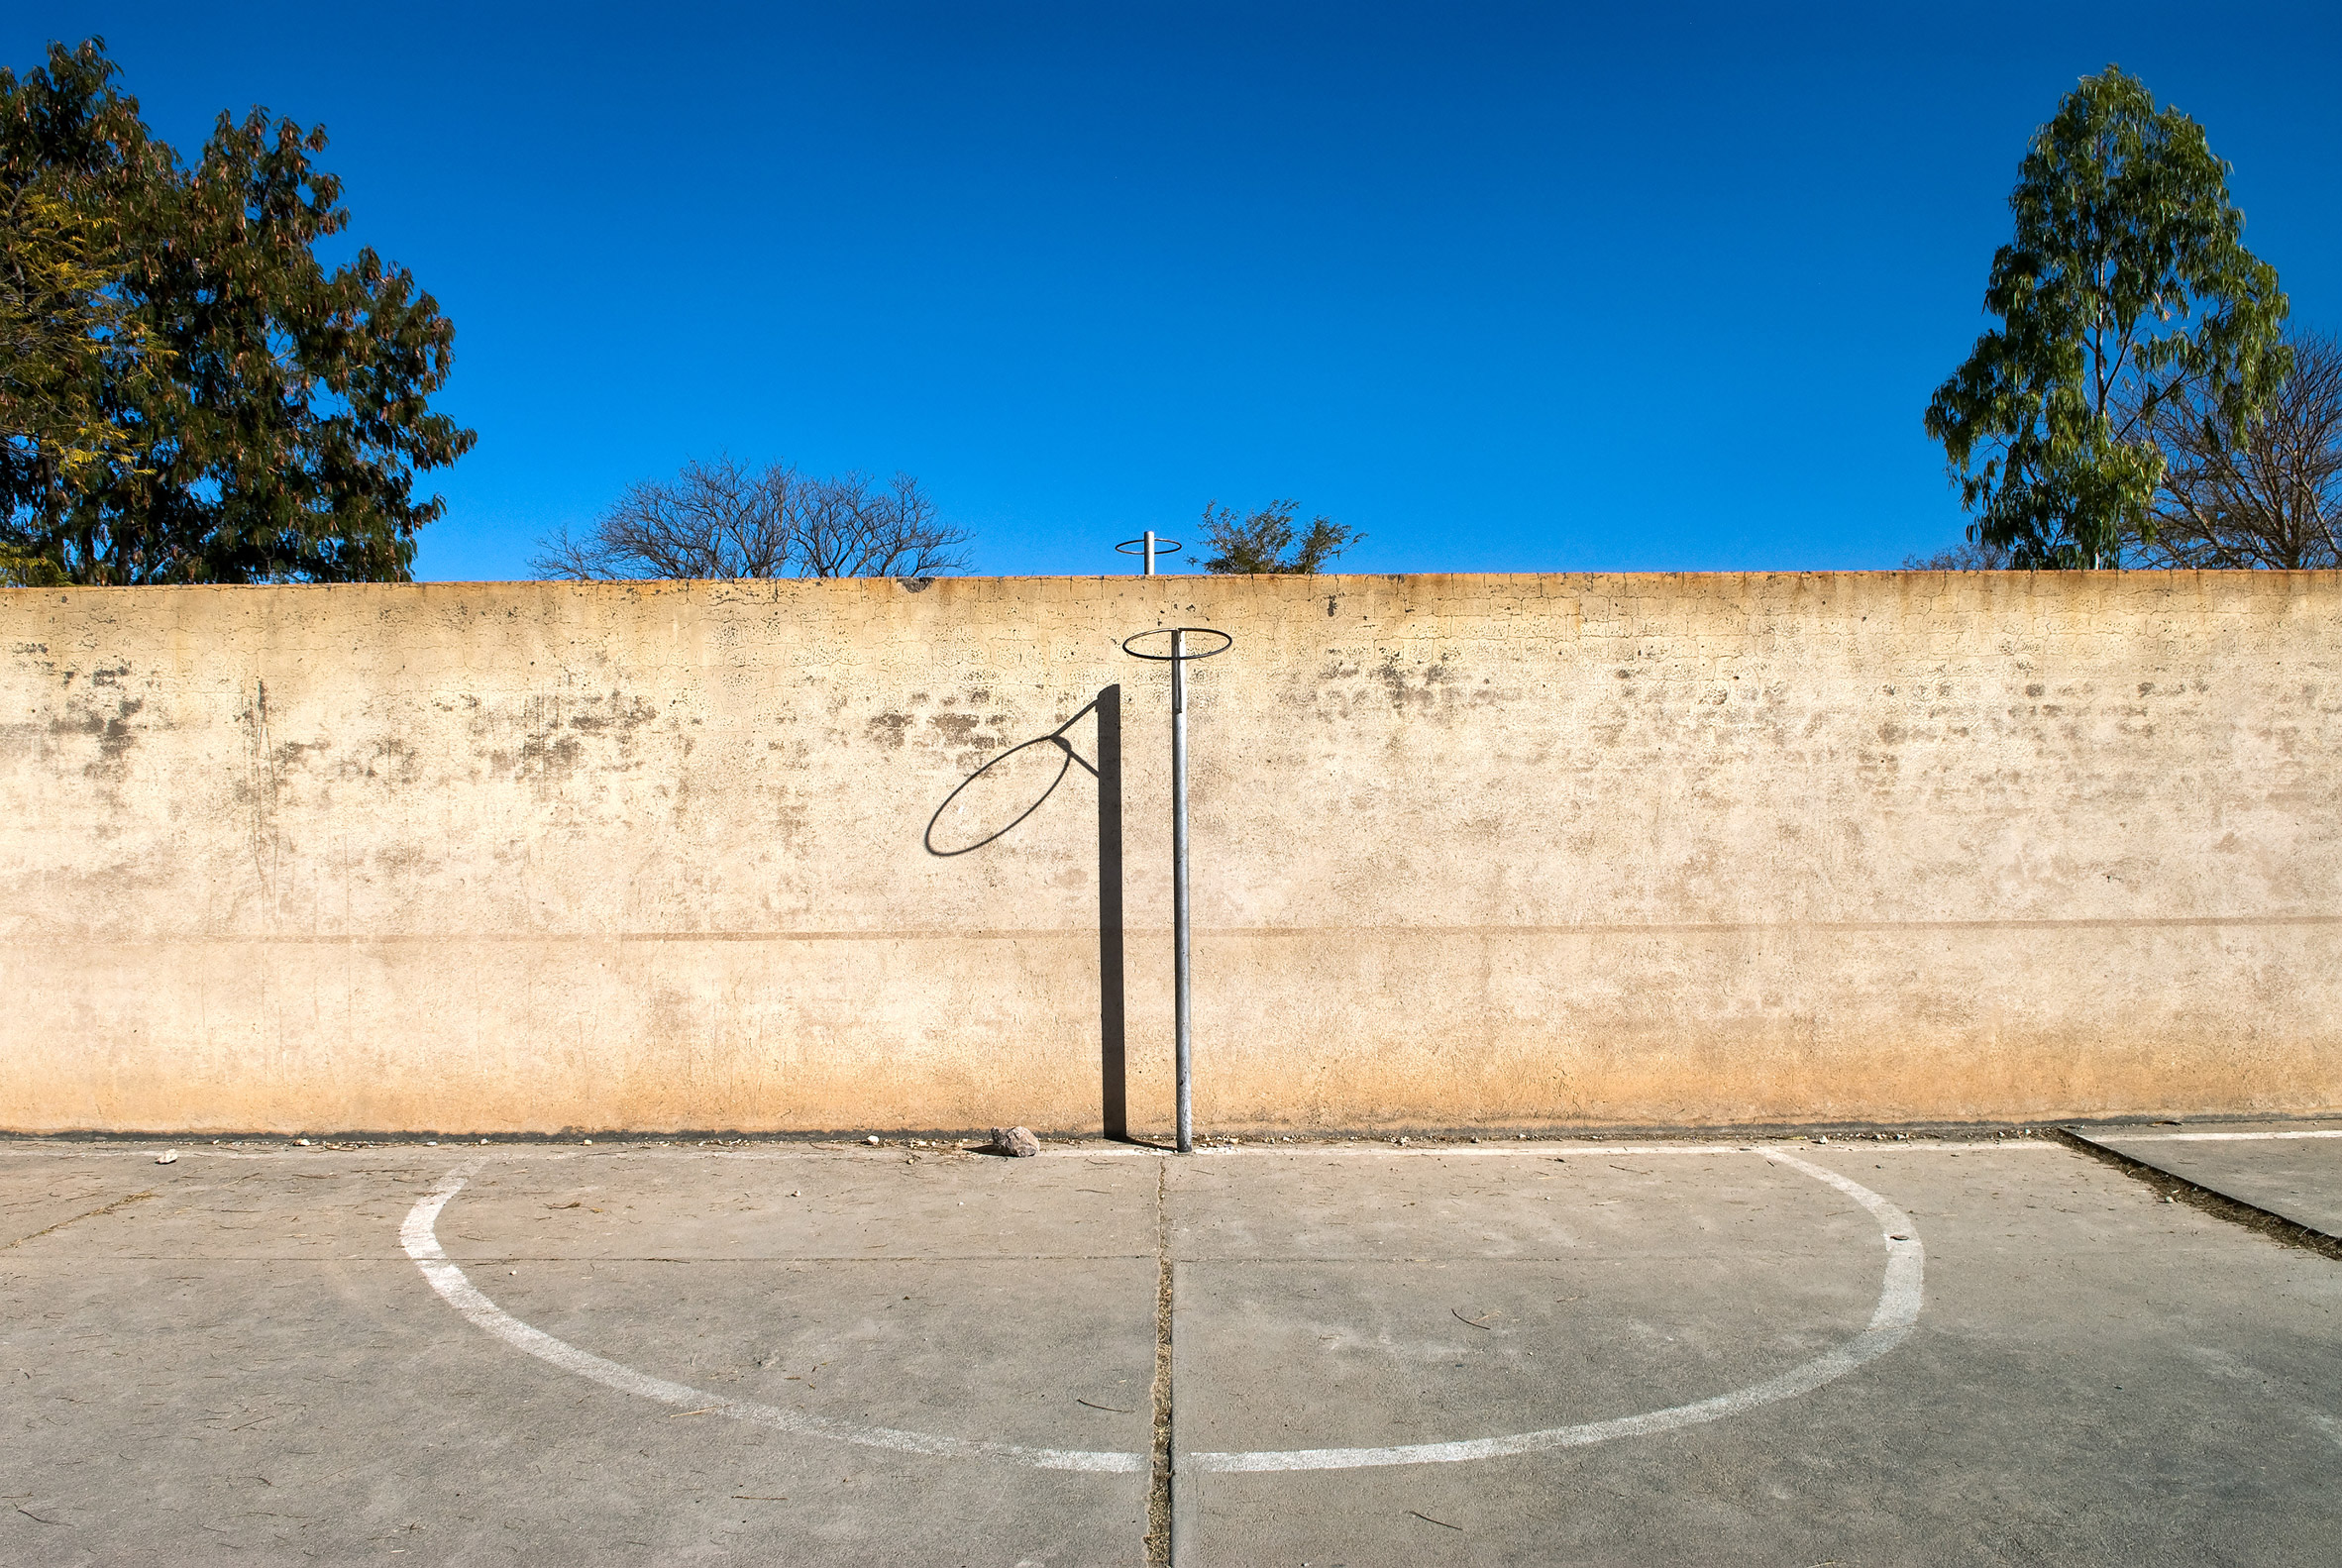 Hoops photography exhibition at National Building Museum